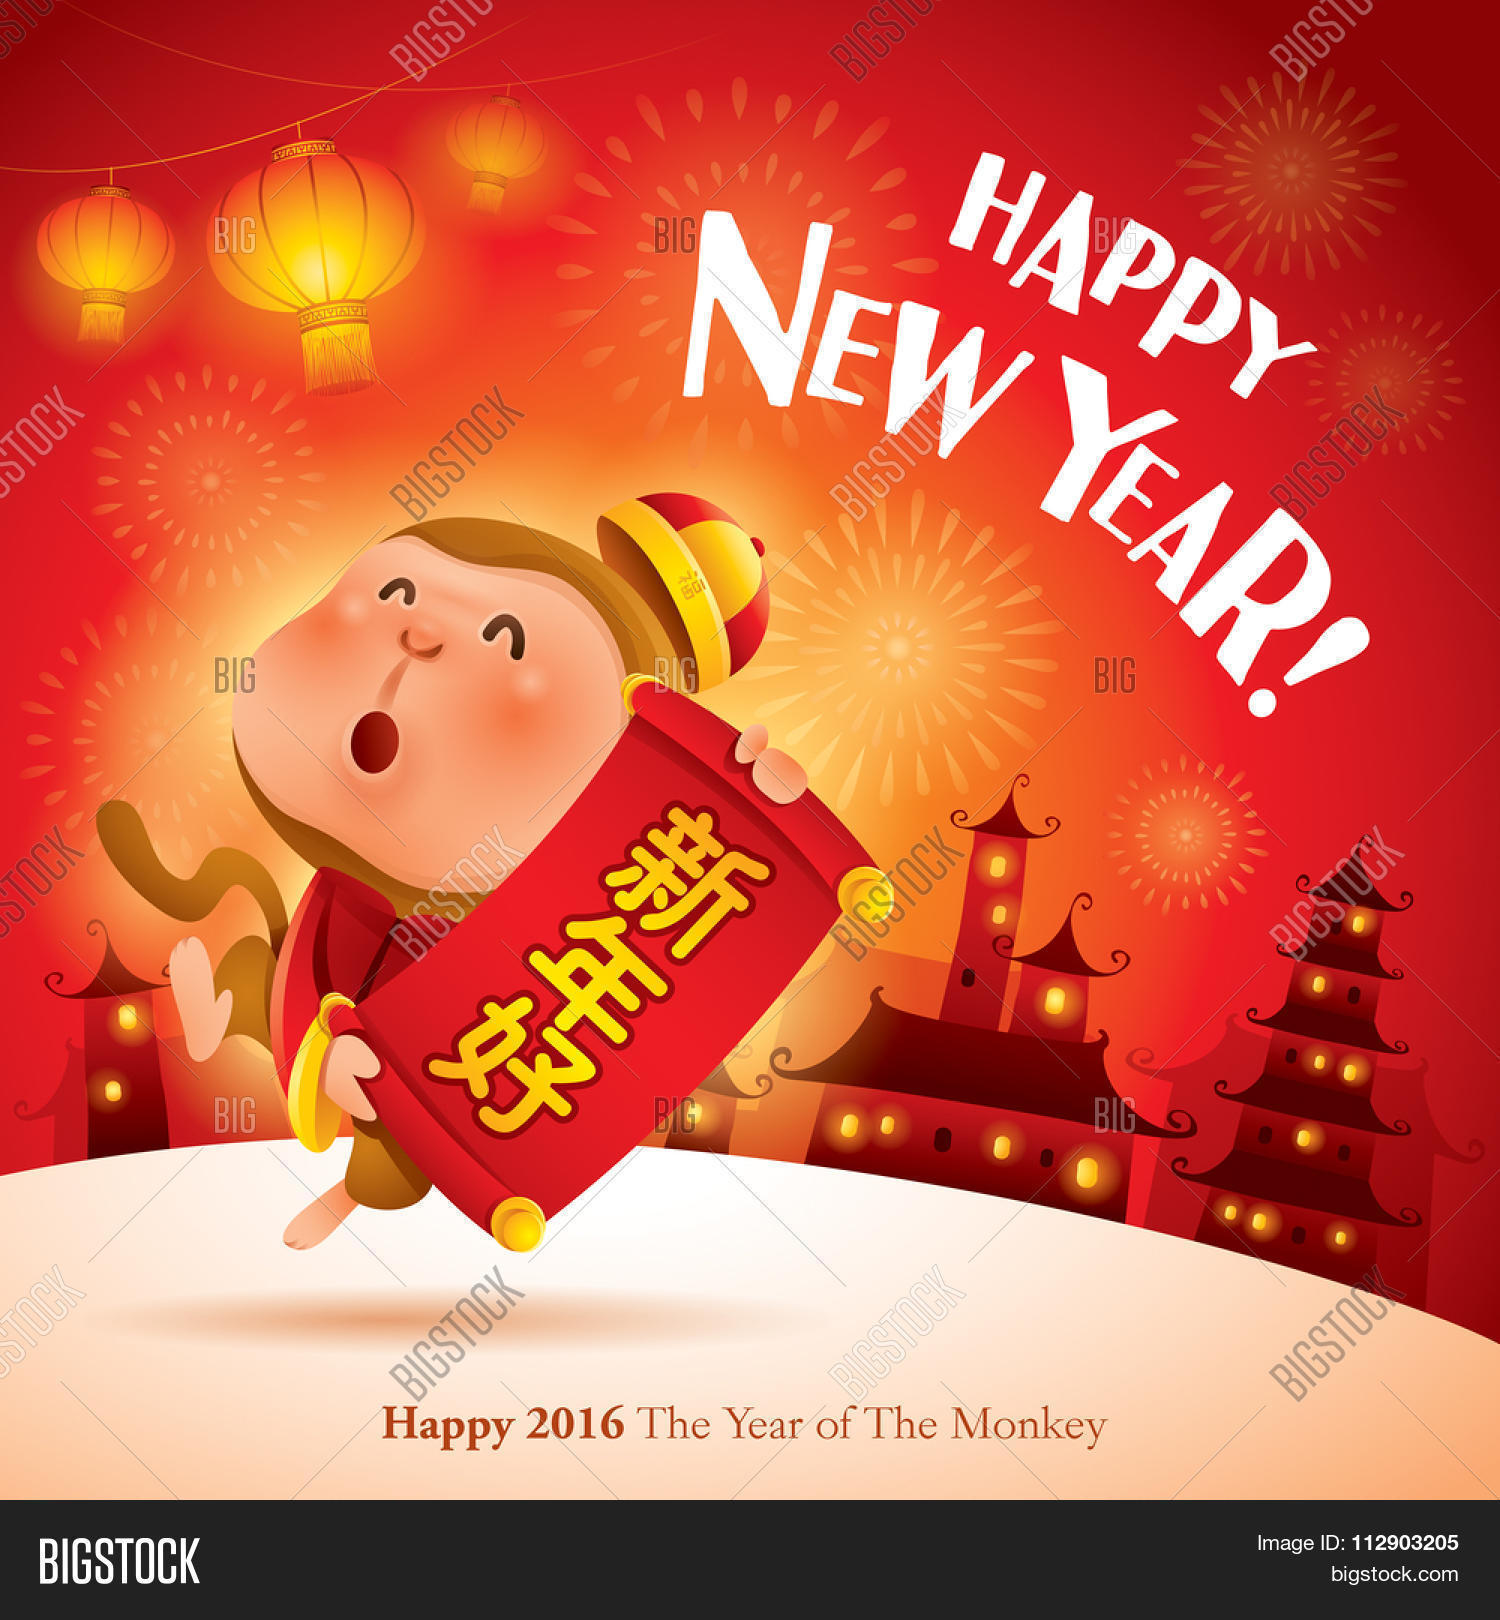 Happy New Year Vector Photo Free Trial Bigstock